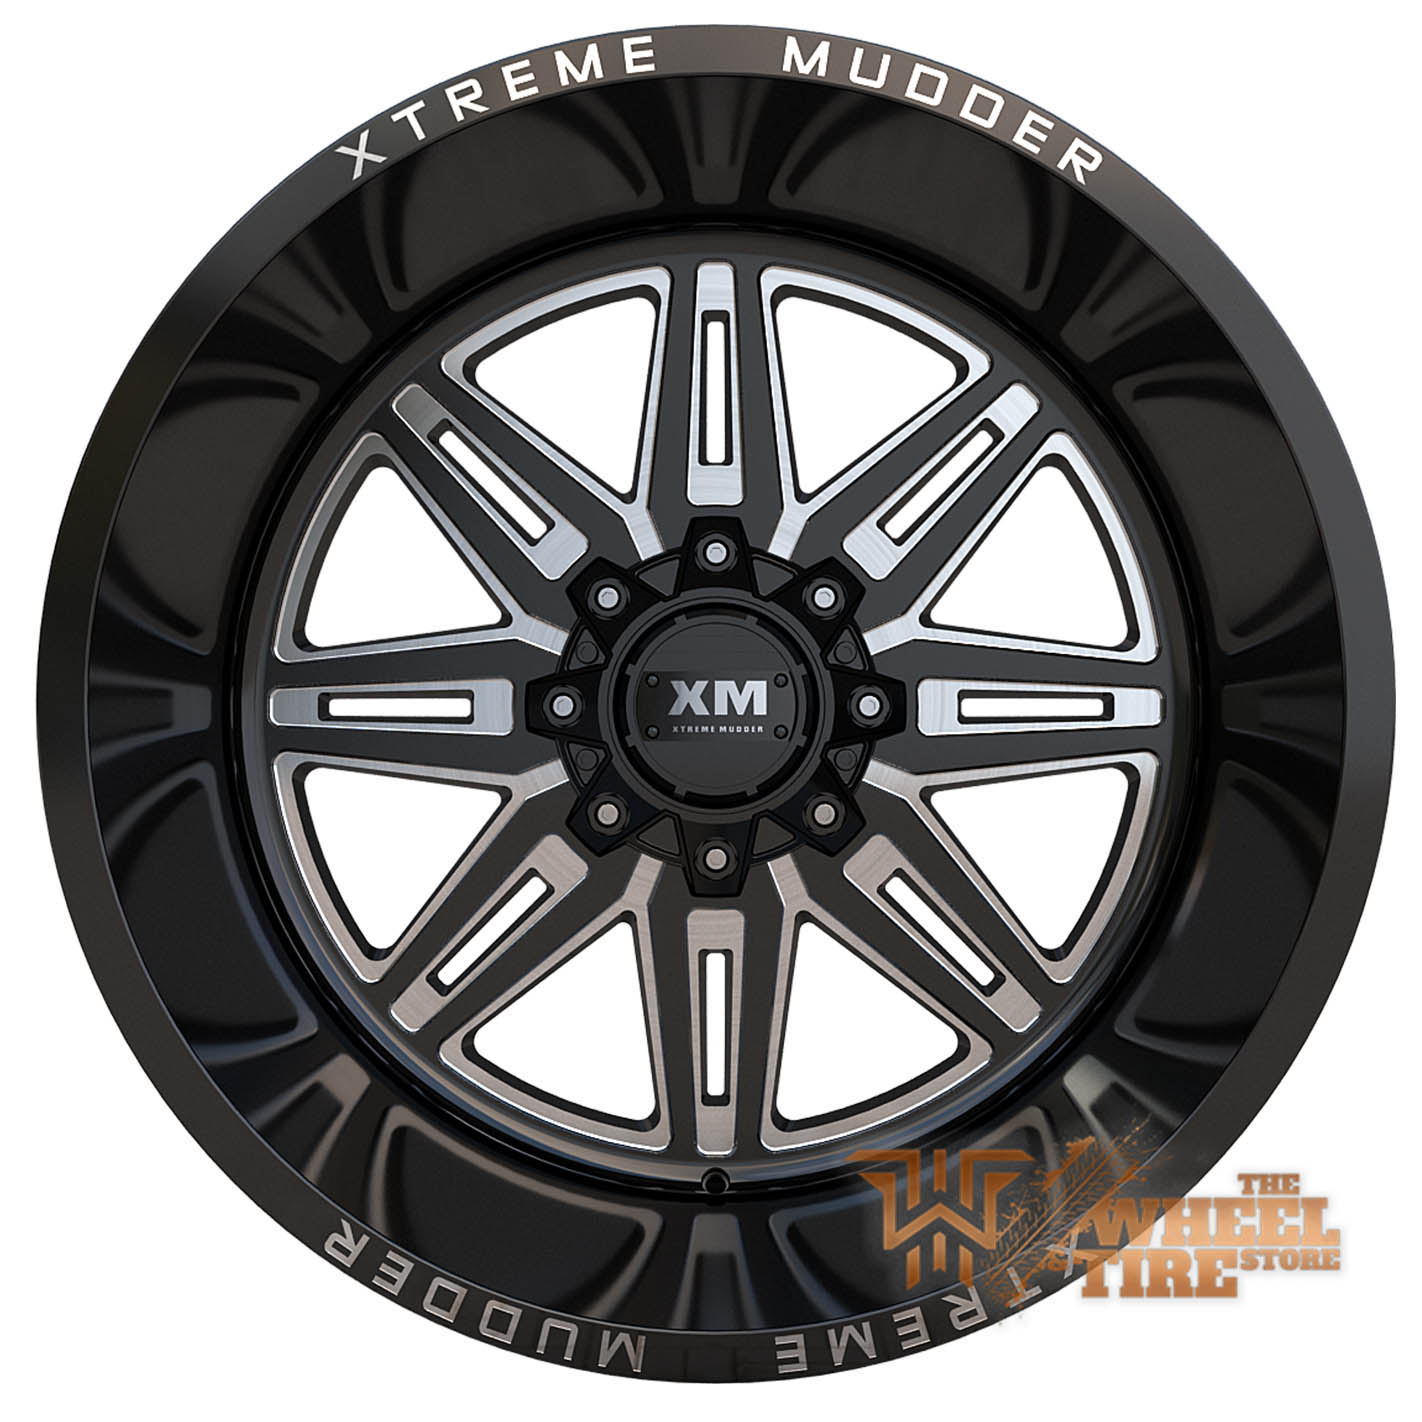 XTREME MUDDER XM-341 Wheel in Gloss Black Milled (Set of 4)